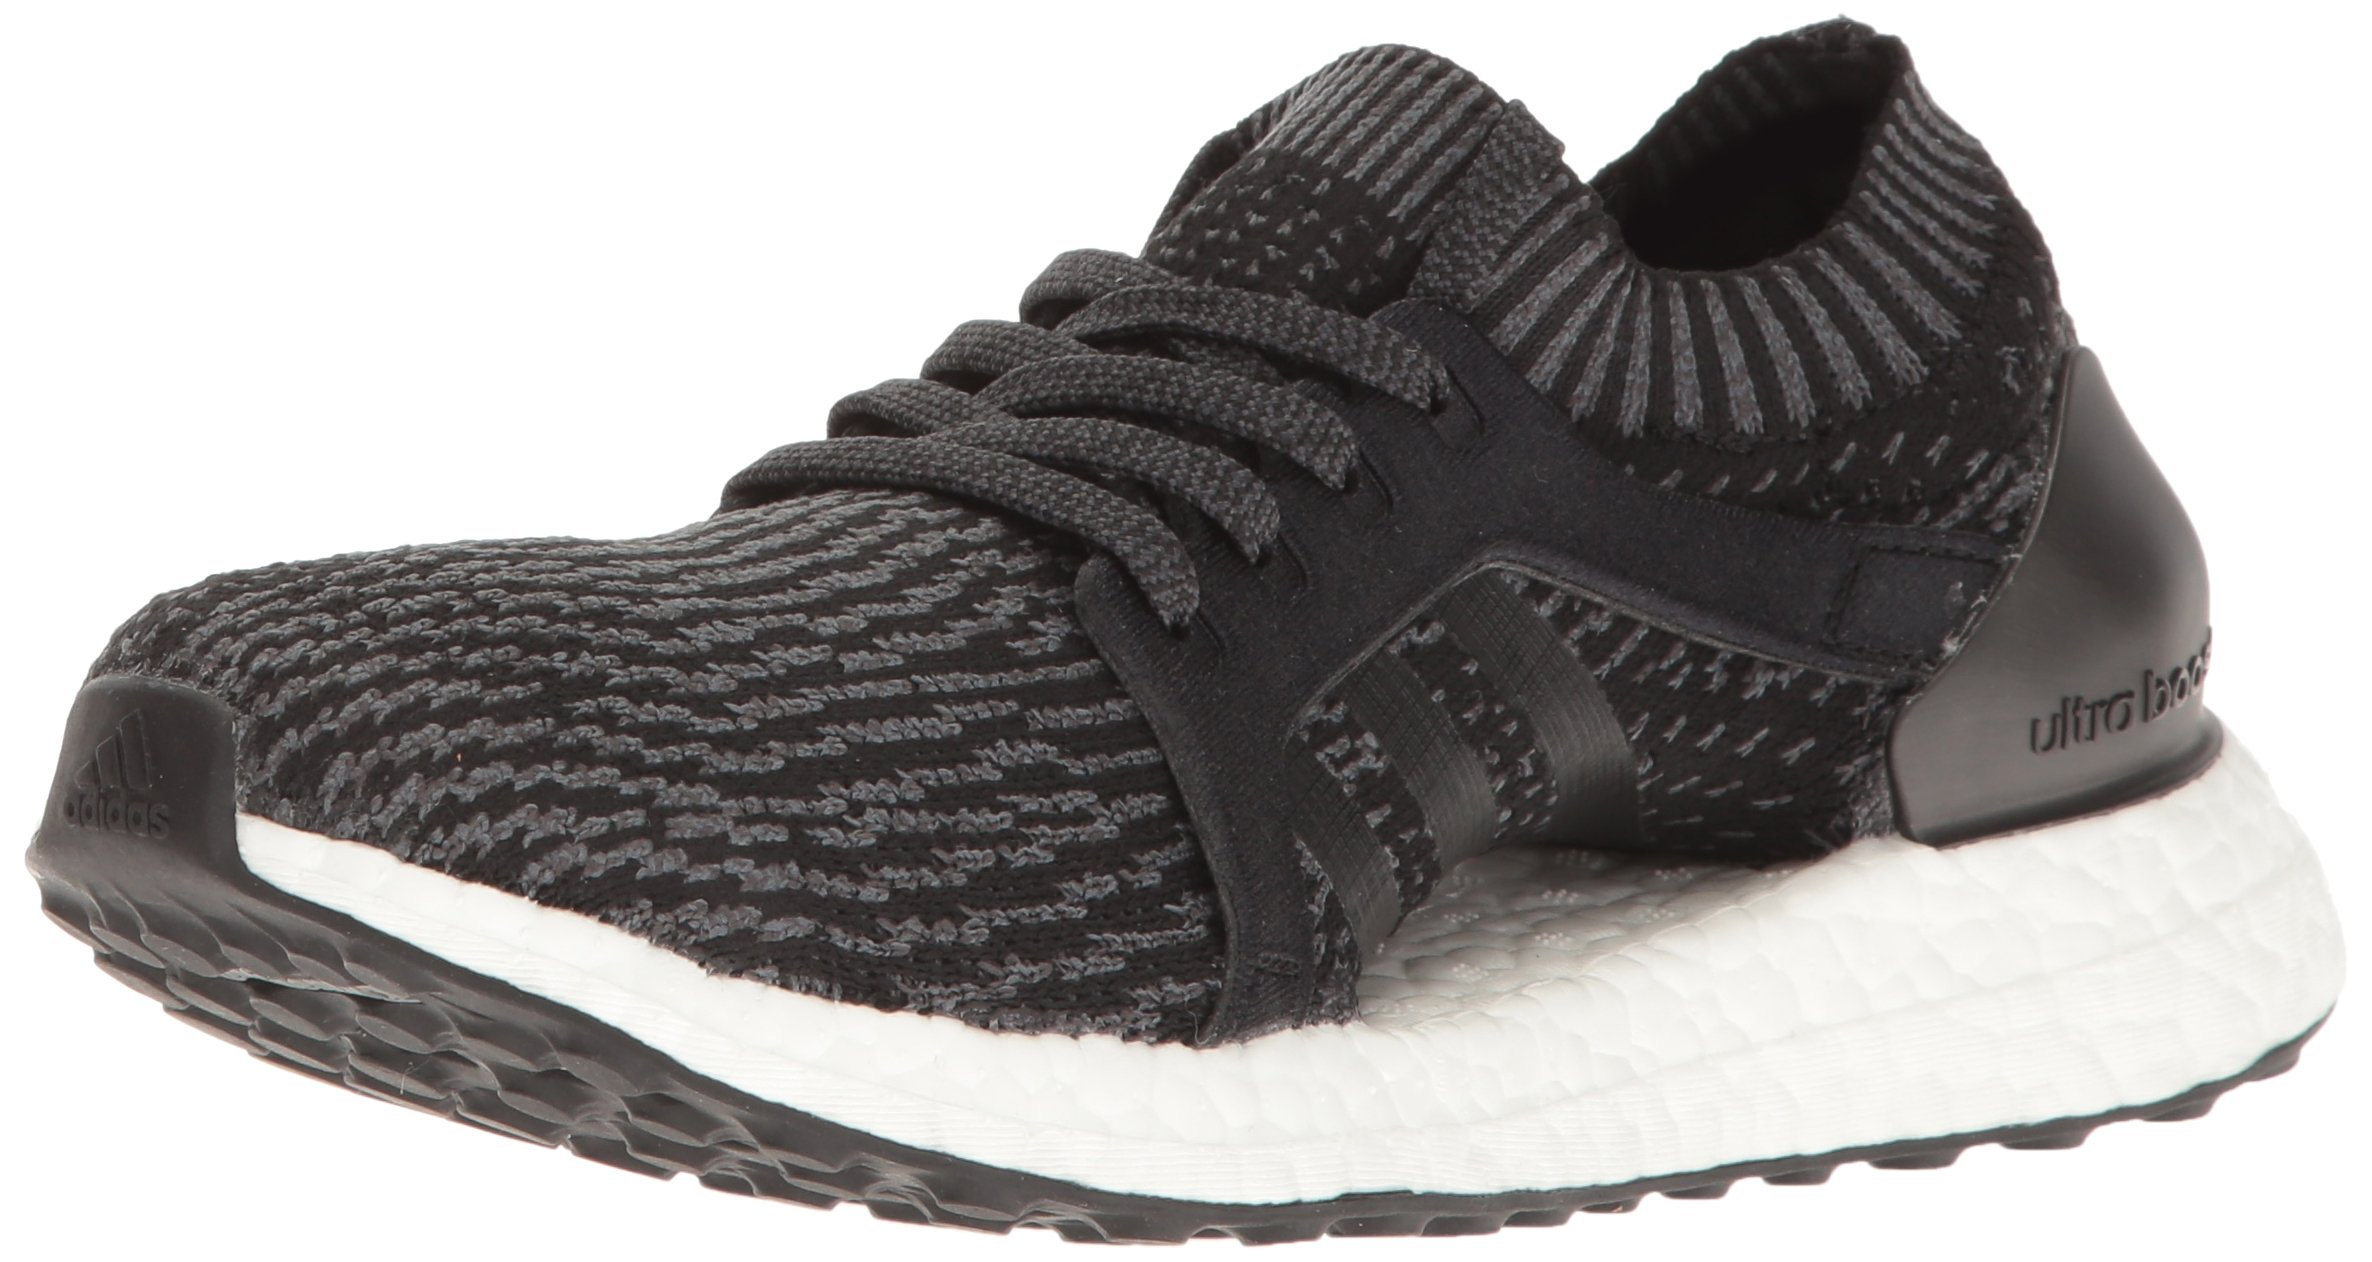 a000beaa97dab Adidas Ultra Boost 11.5 Top Deals   Lowest Price